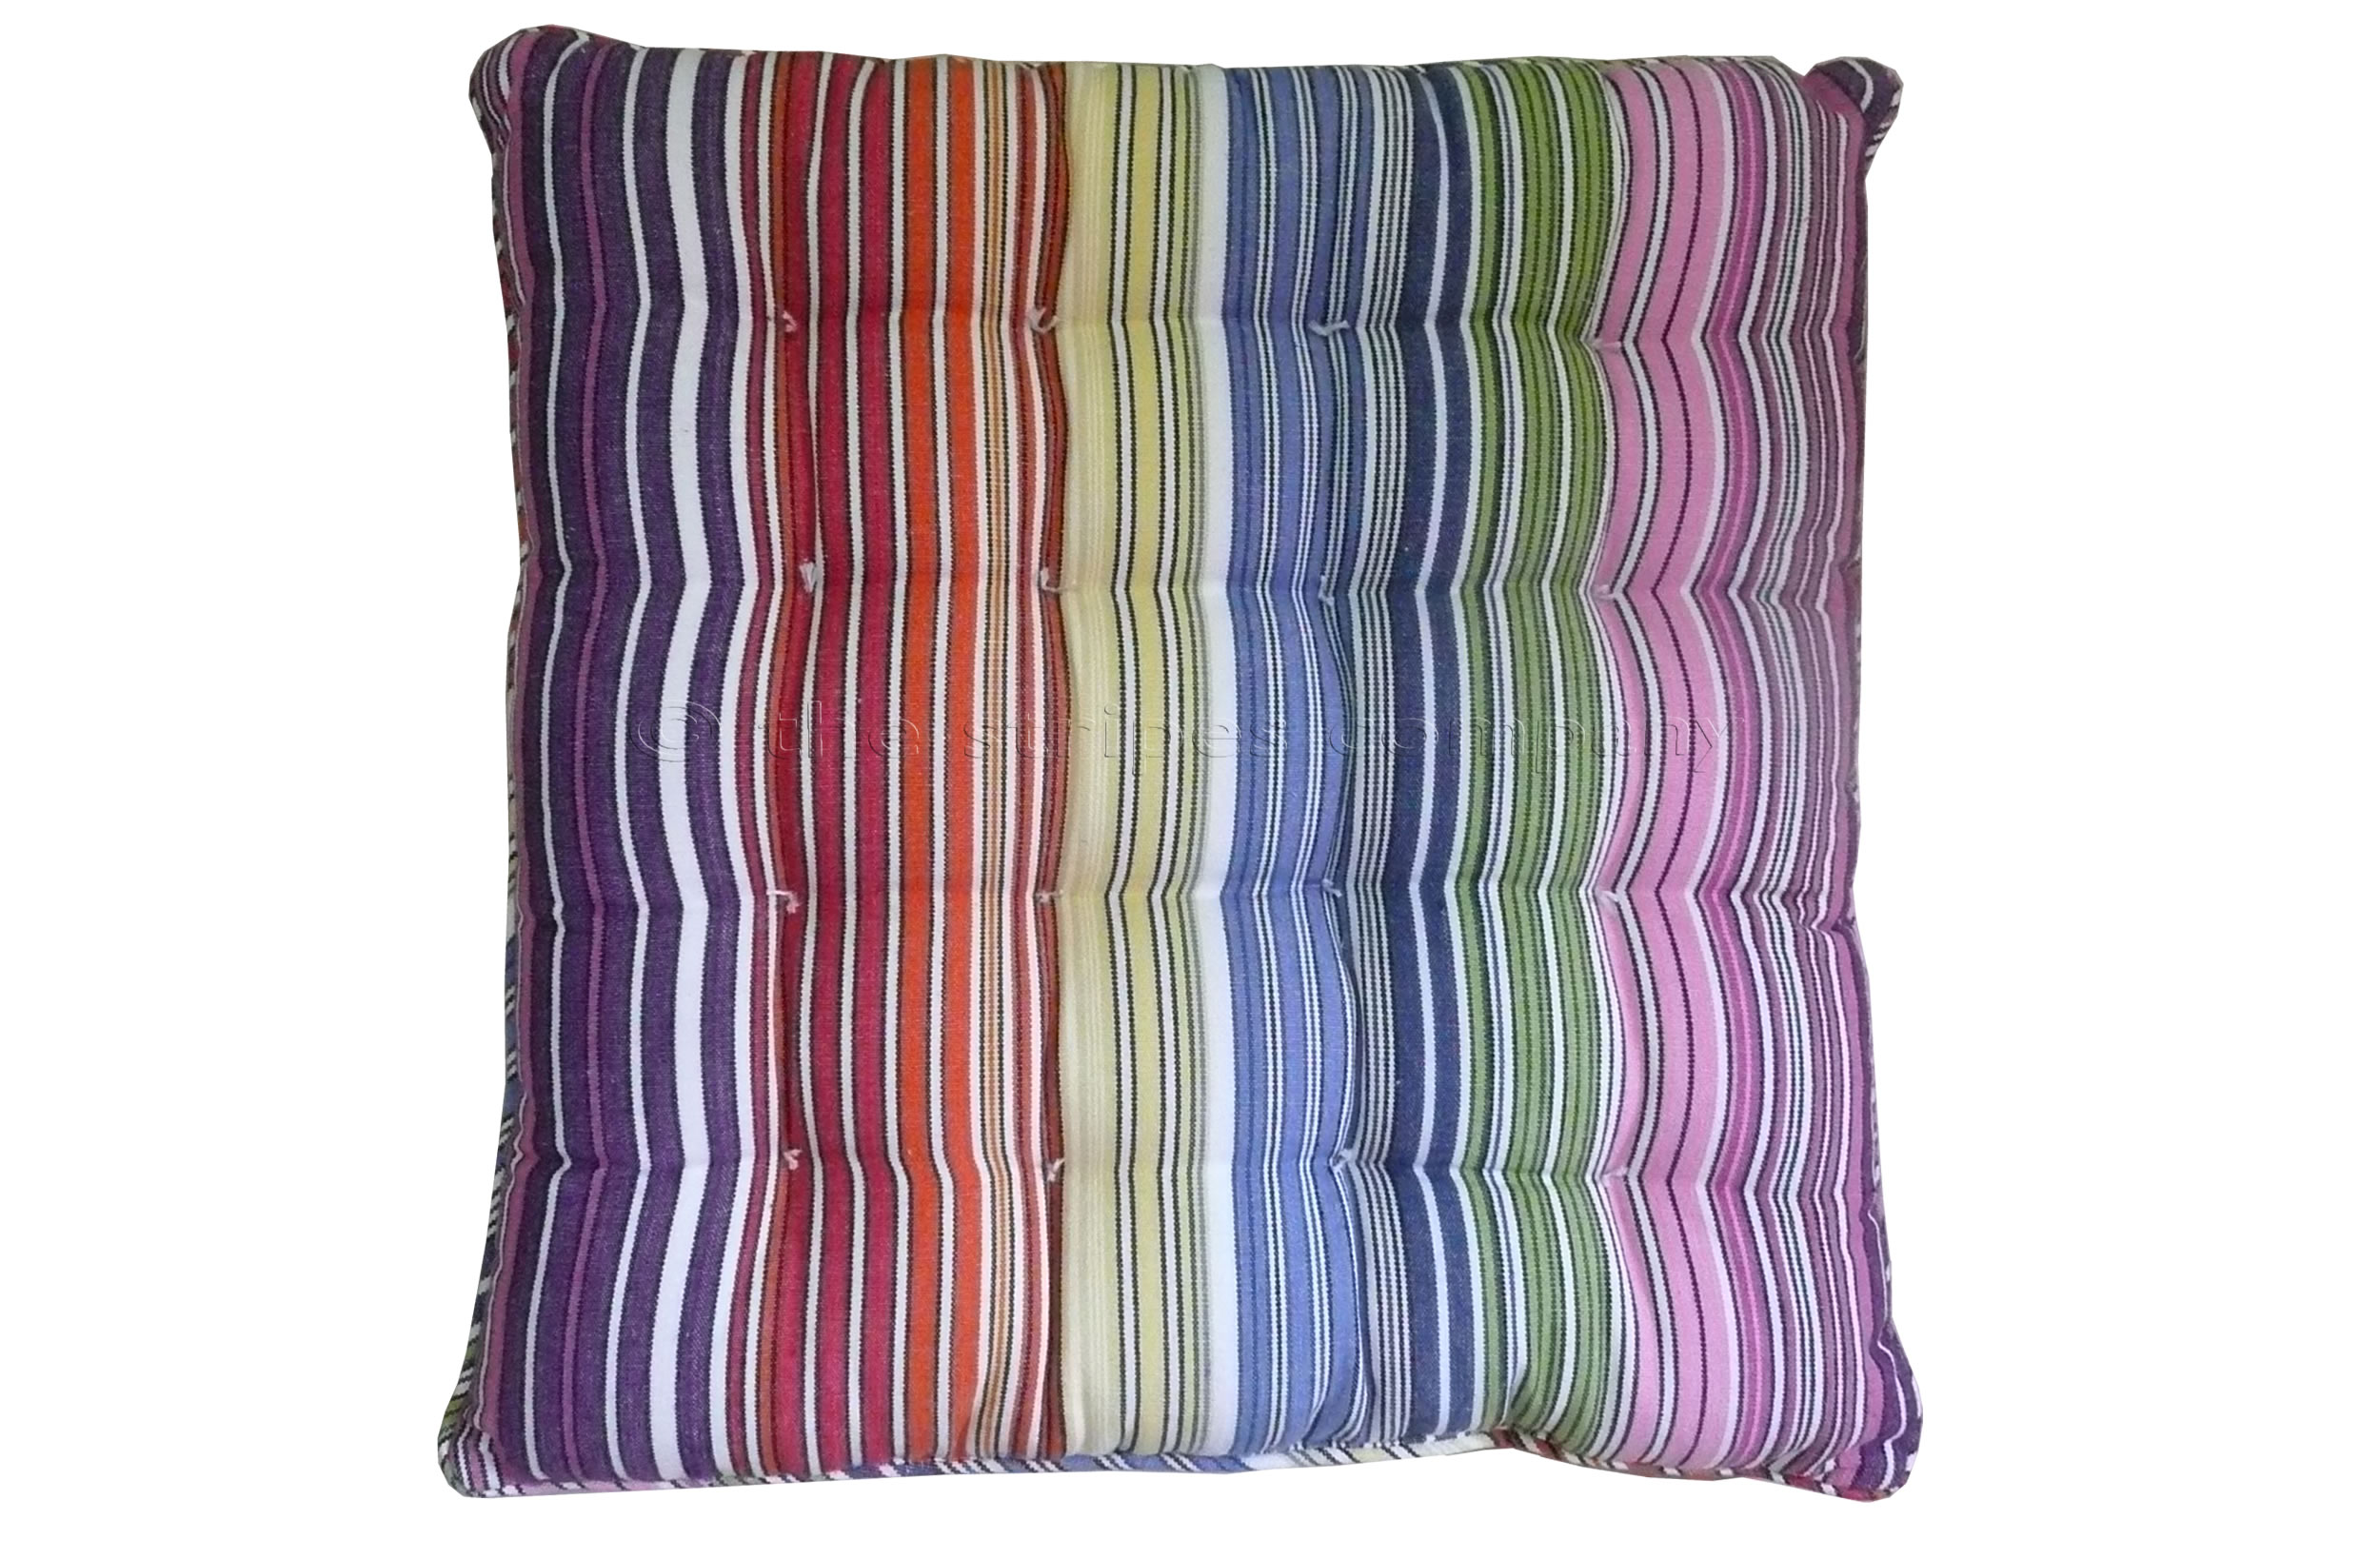 Multi Striped Seat Pads with Piping | Square Piped Seat Pads narrow rainbow and white